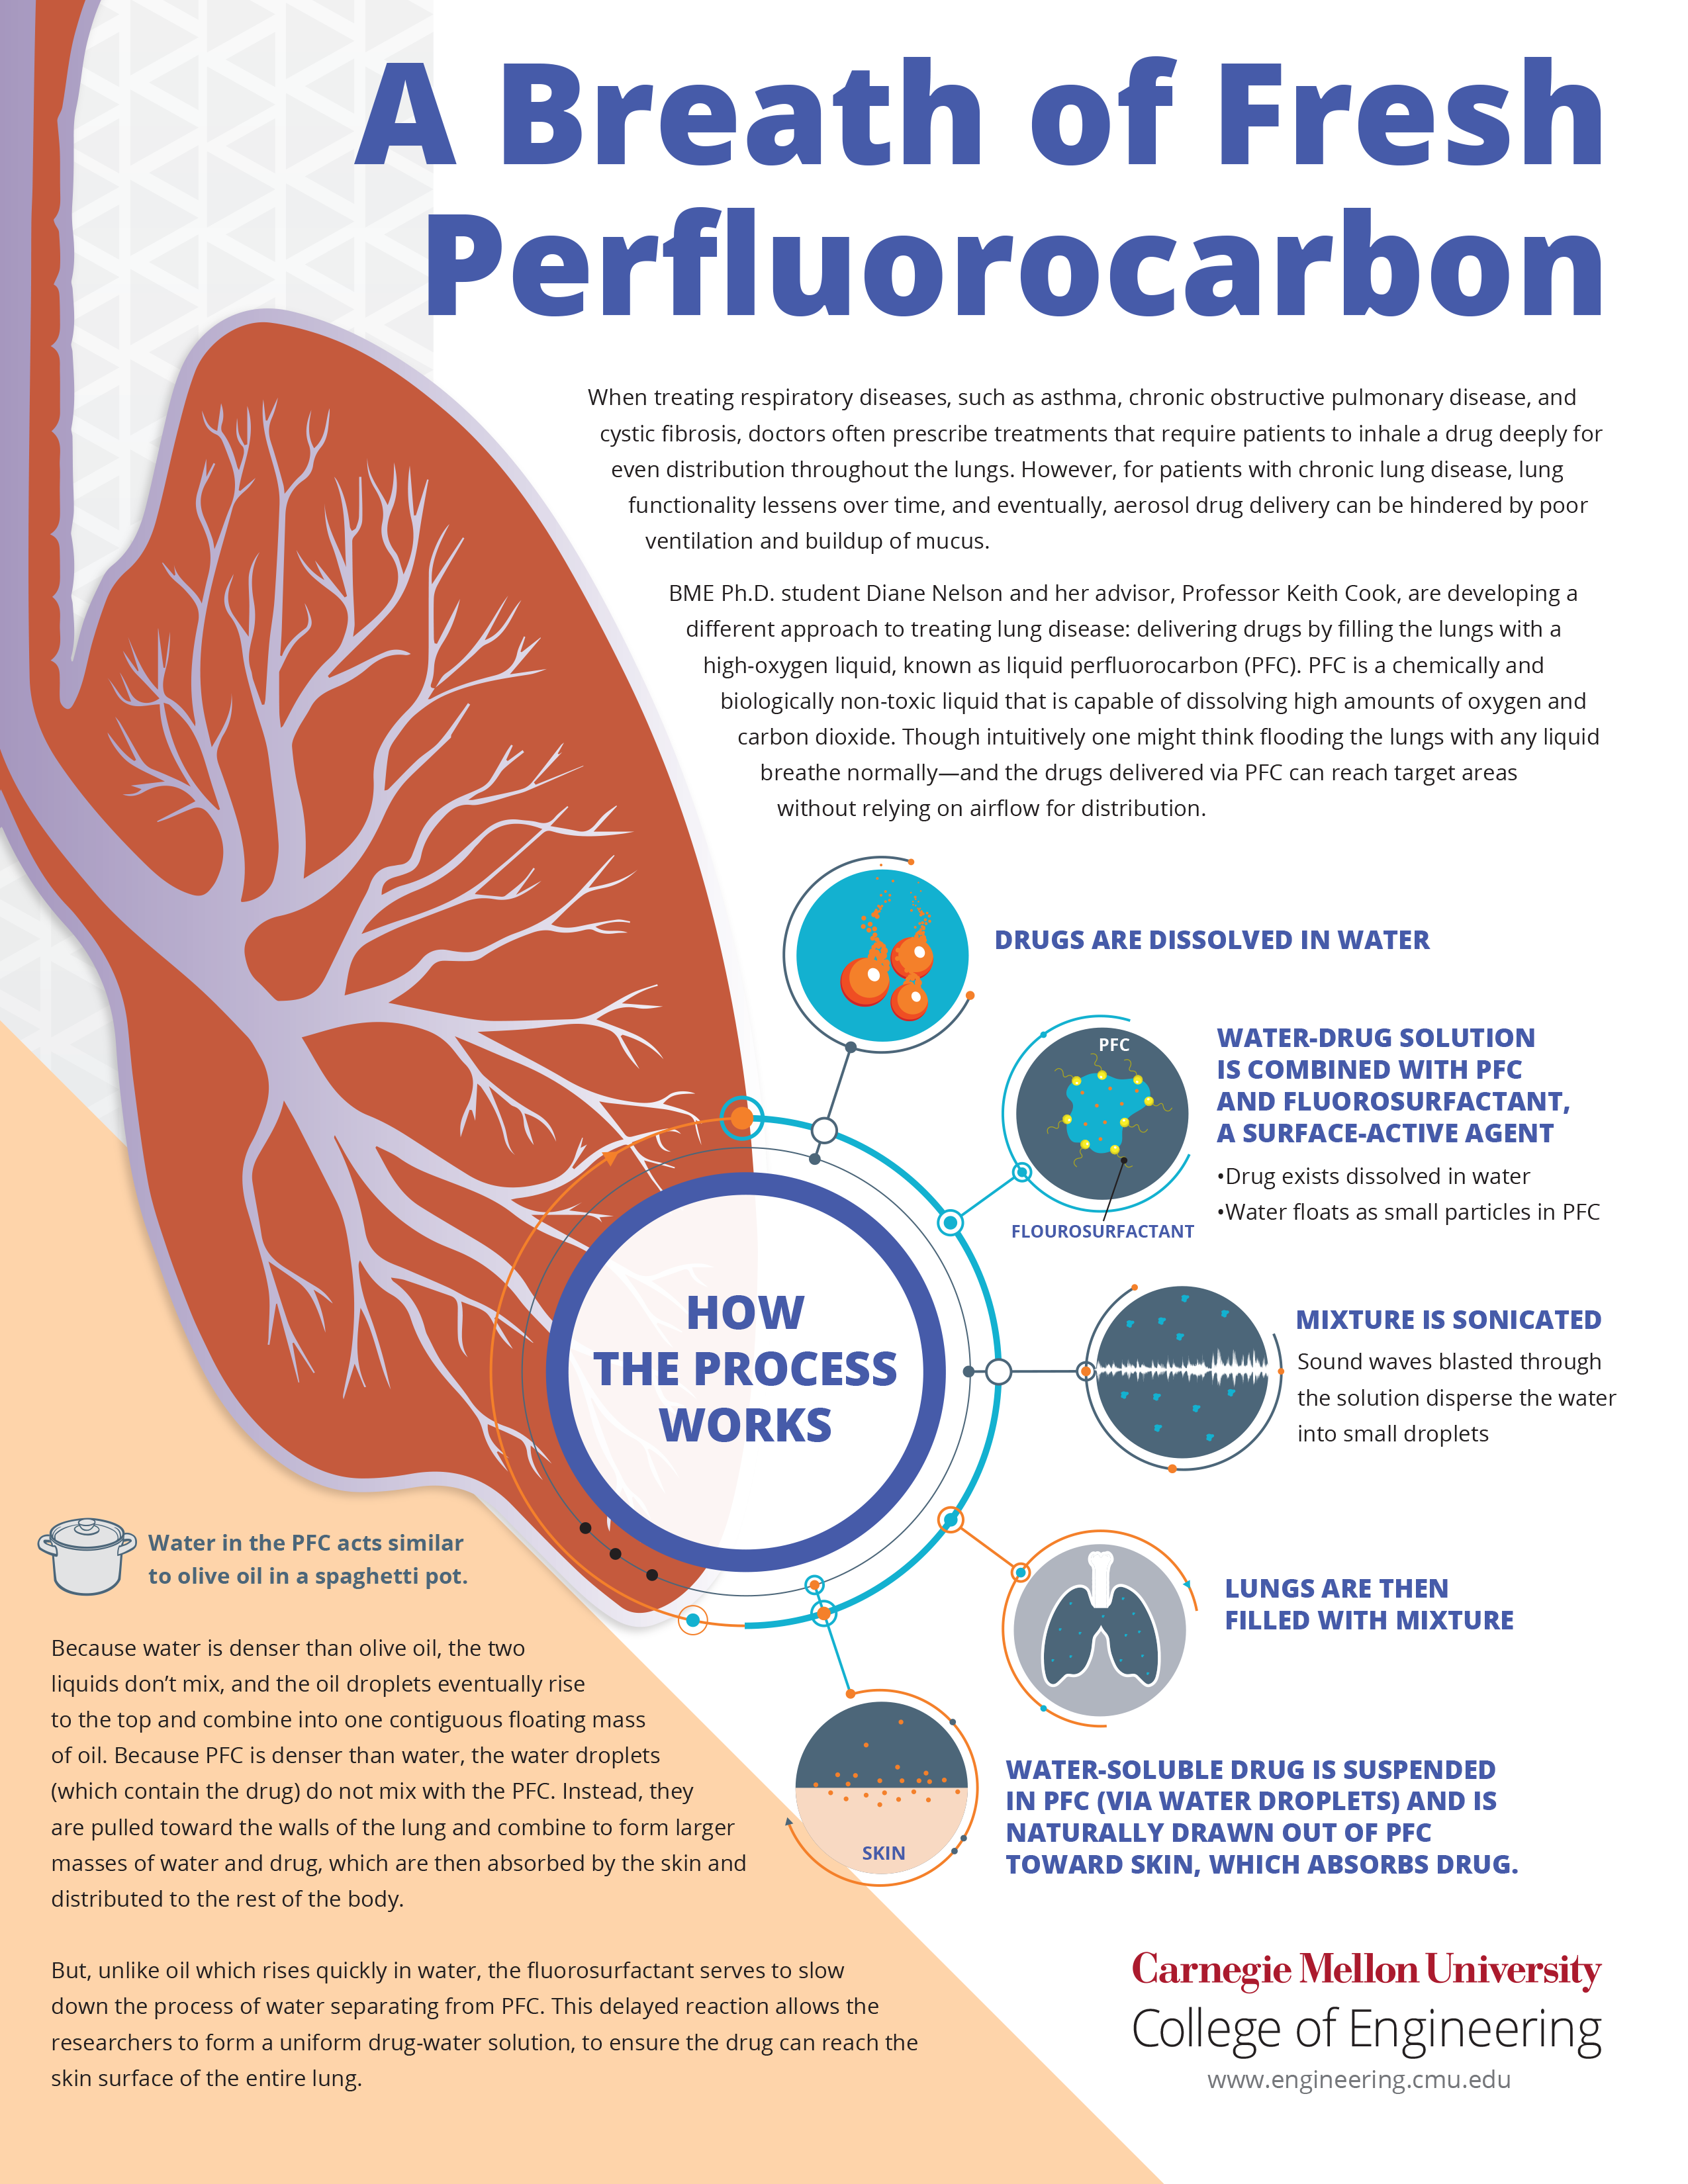 Infographic on liquid drug delivery to lungs